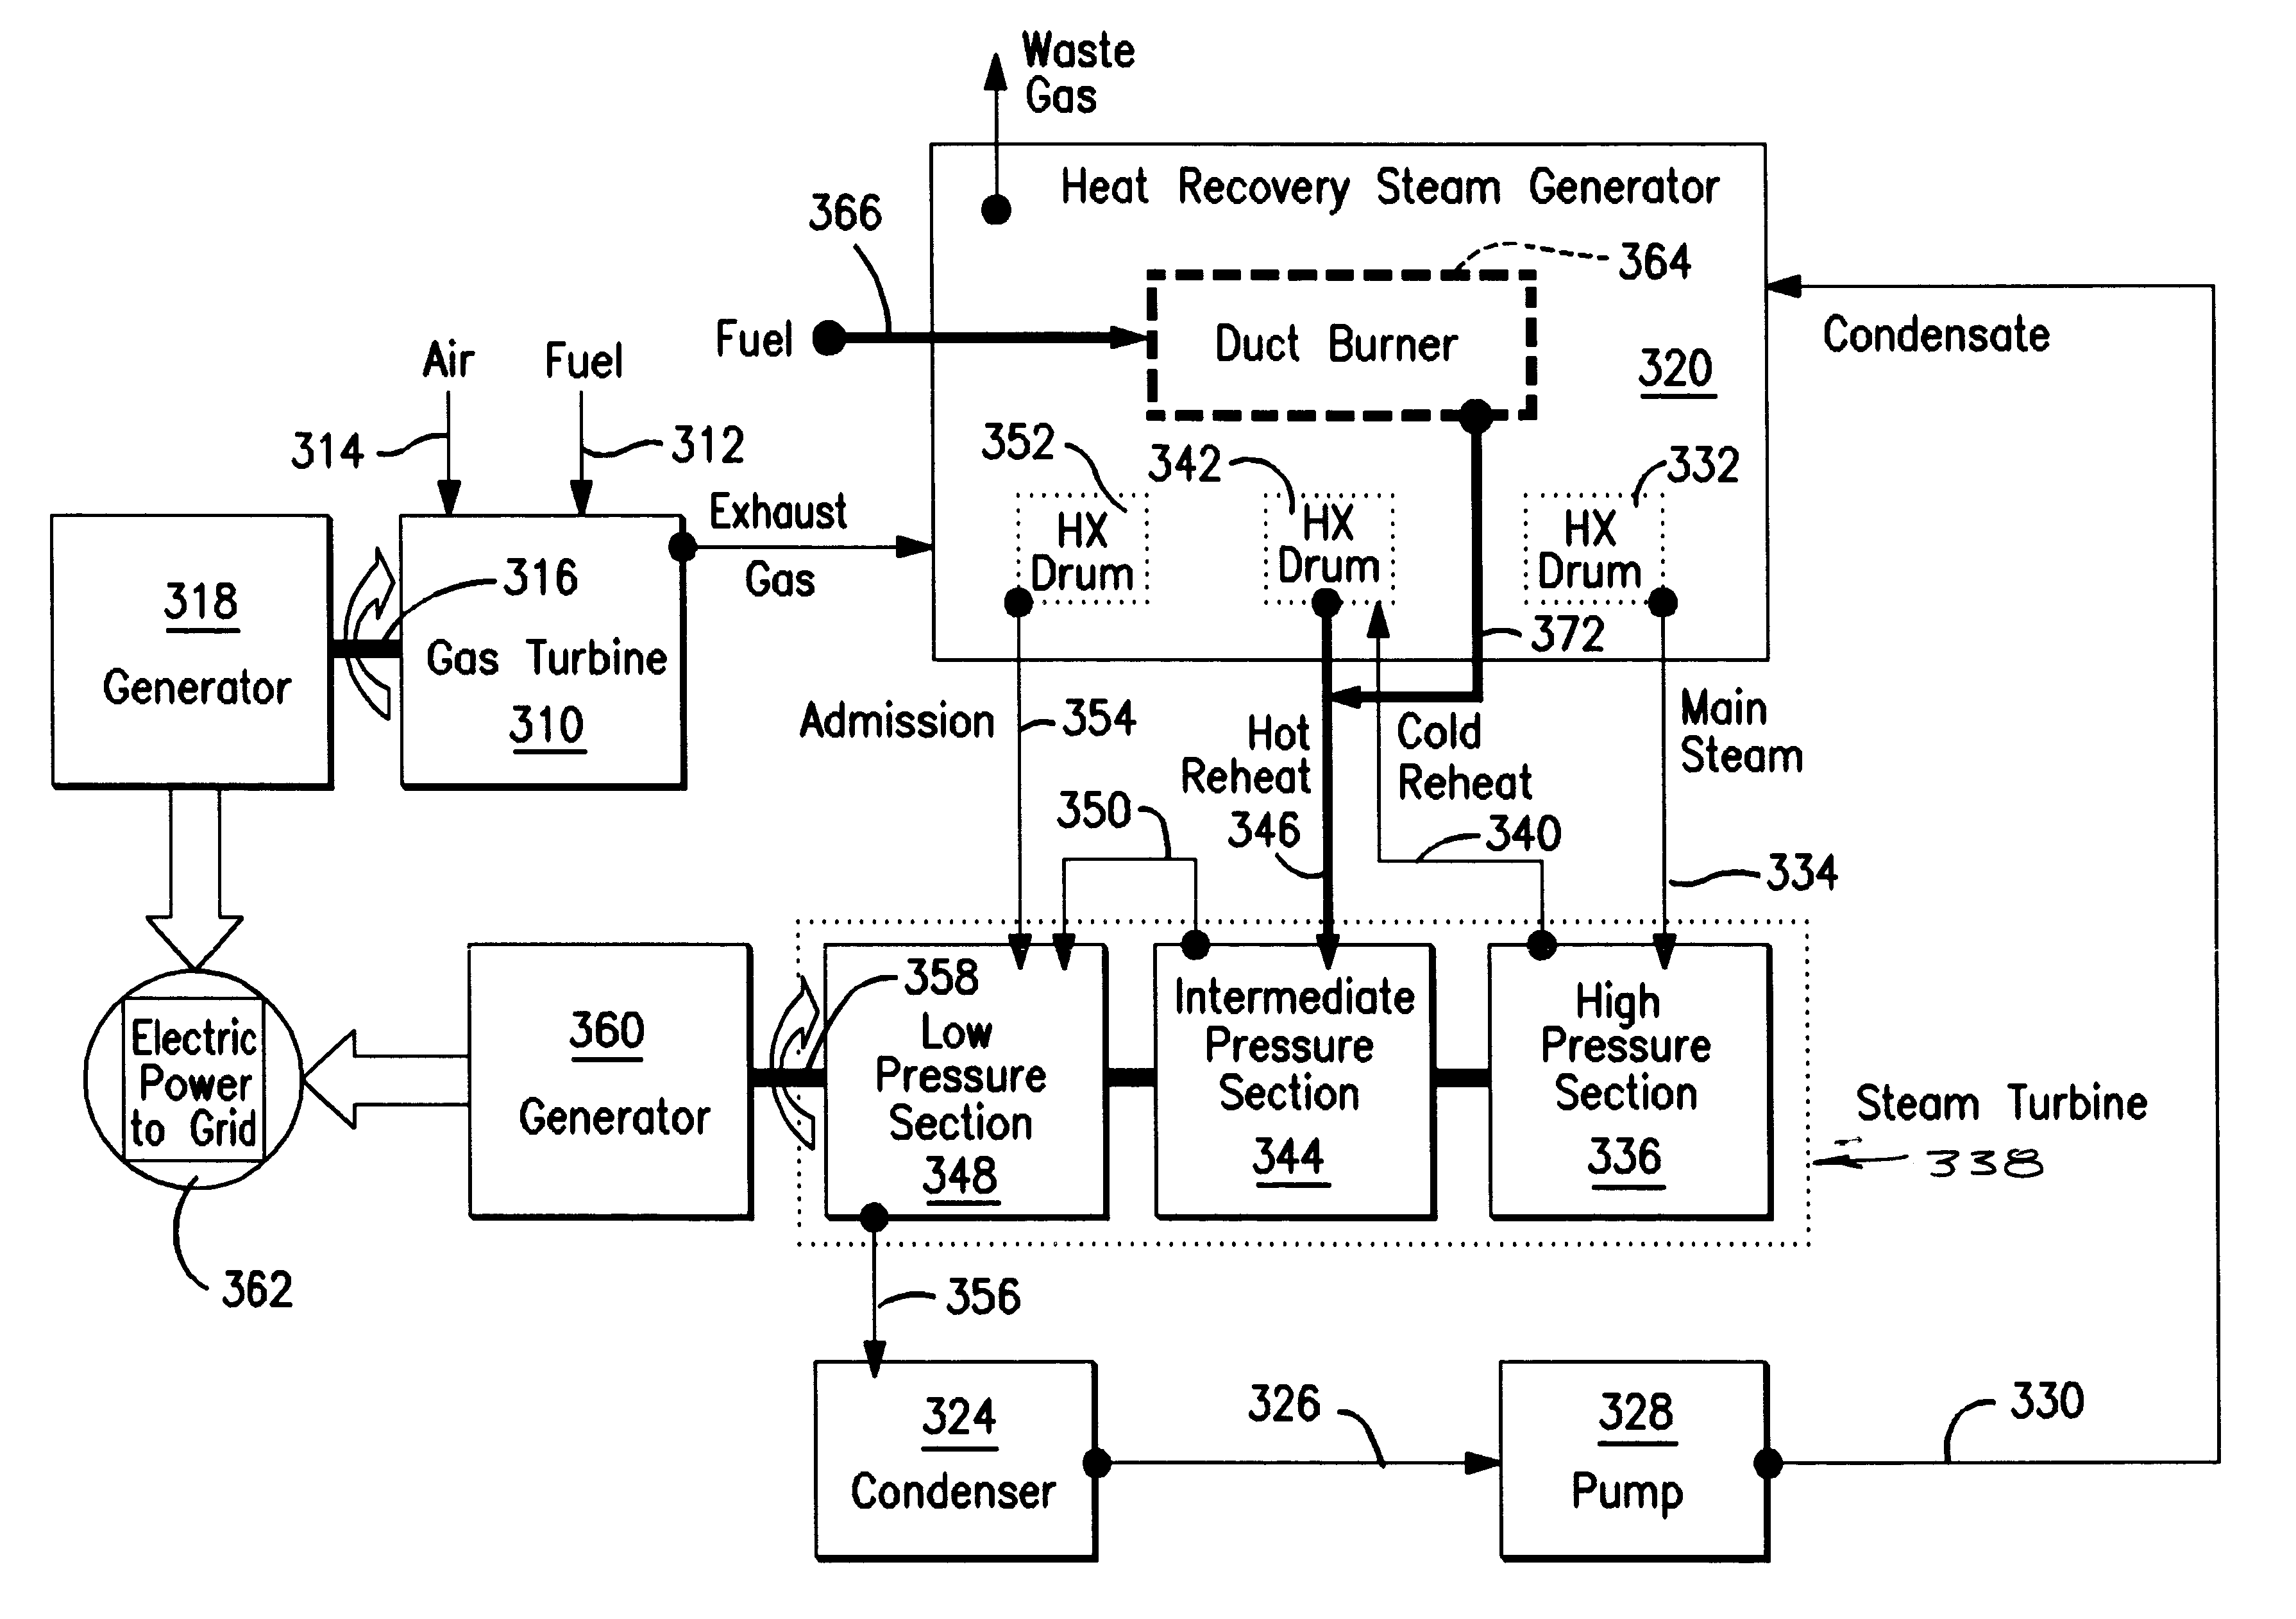 Patent US Optimized steam turbine peaking cycles